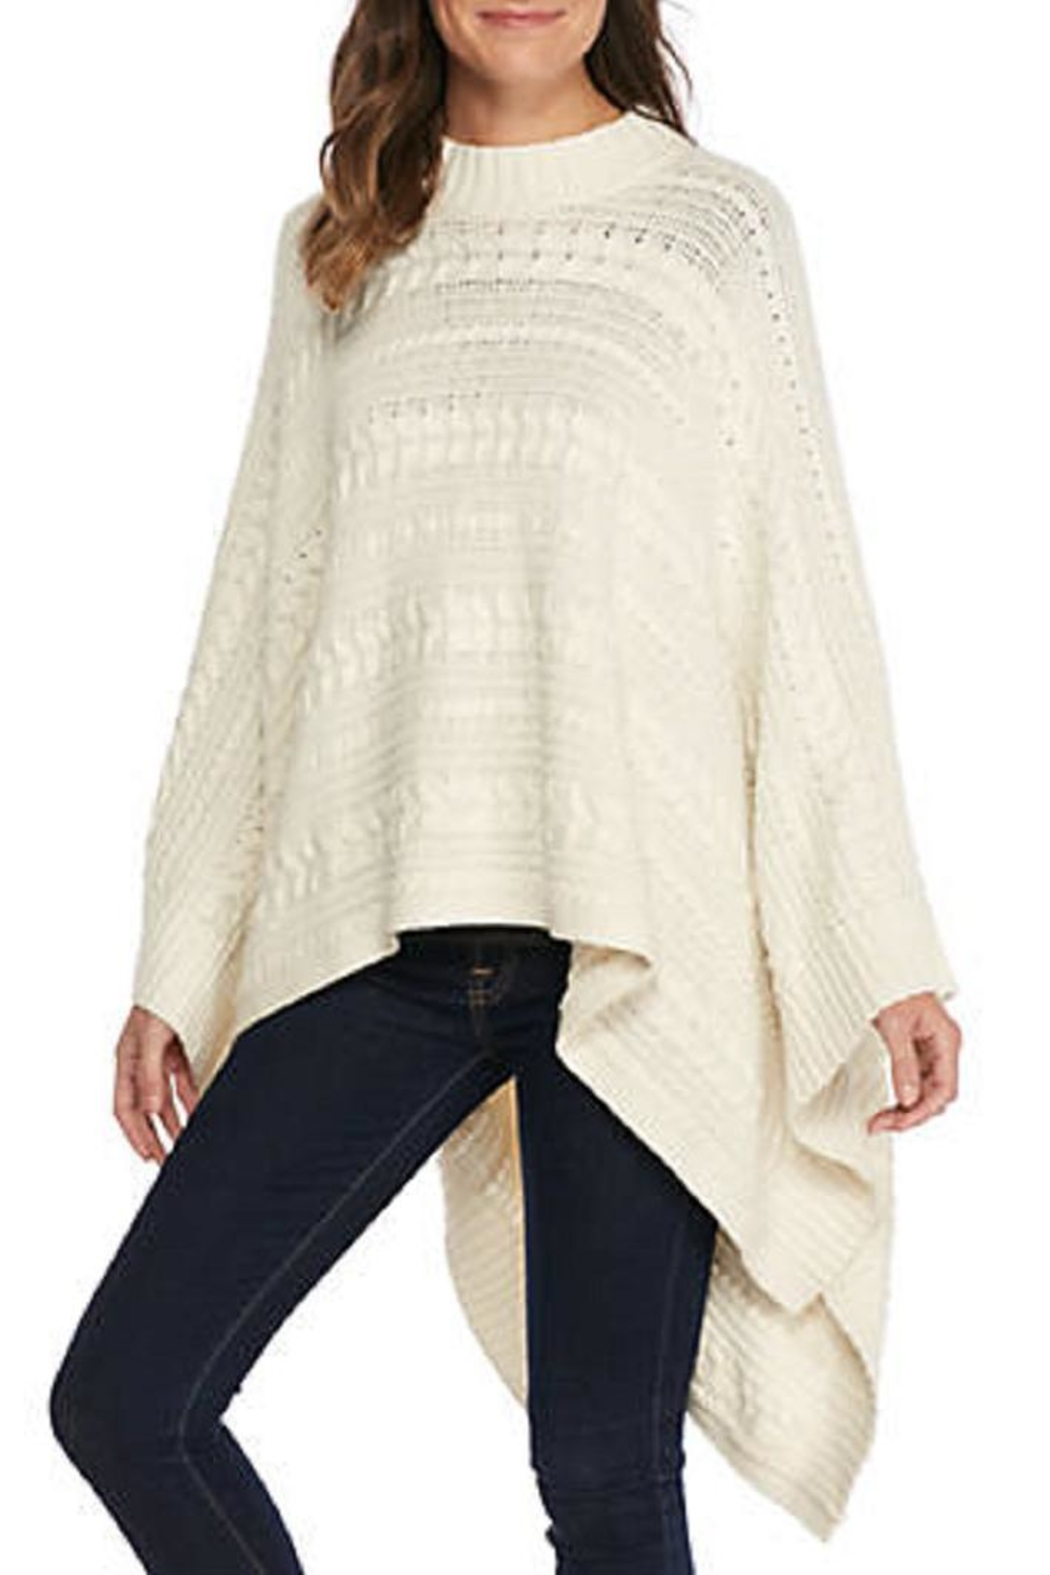 Michael Kors Cream Cable Cape - Main Image